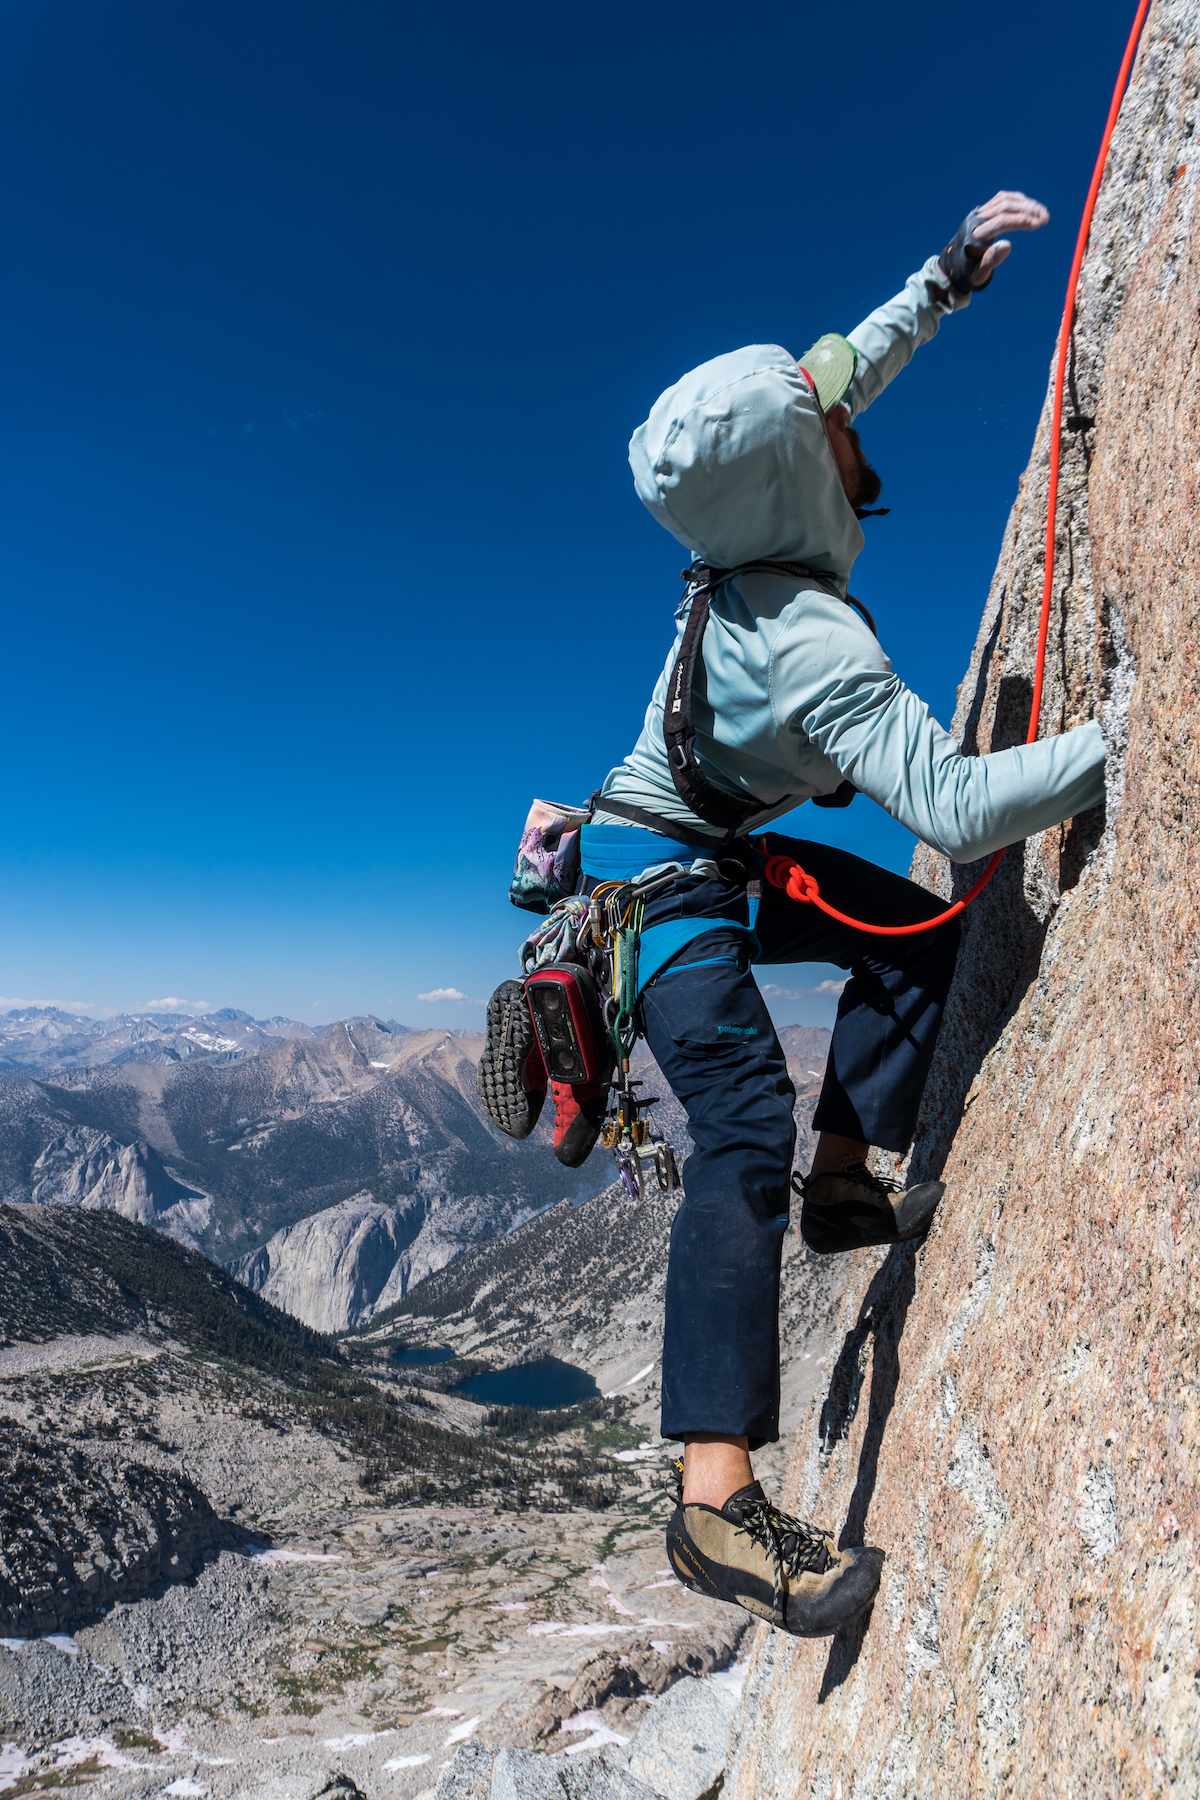 Jon Griffin follows a pitch on a new route he established with the author and Tad McCrea. They called the line Jah Chosstafari on the north face of North Guard in Kings Canyon. [Photo] Tad McCrea